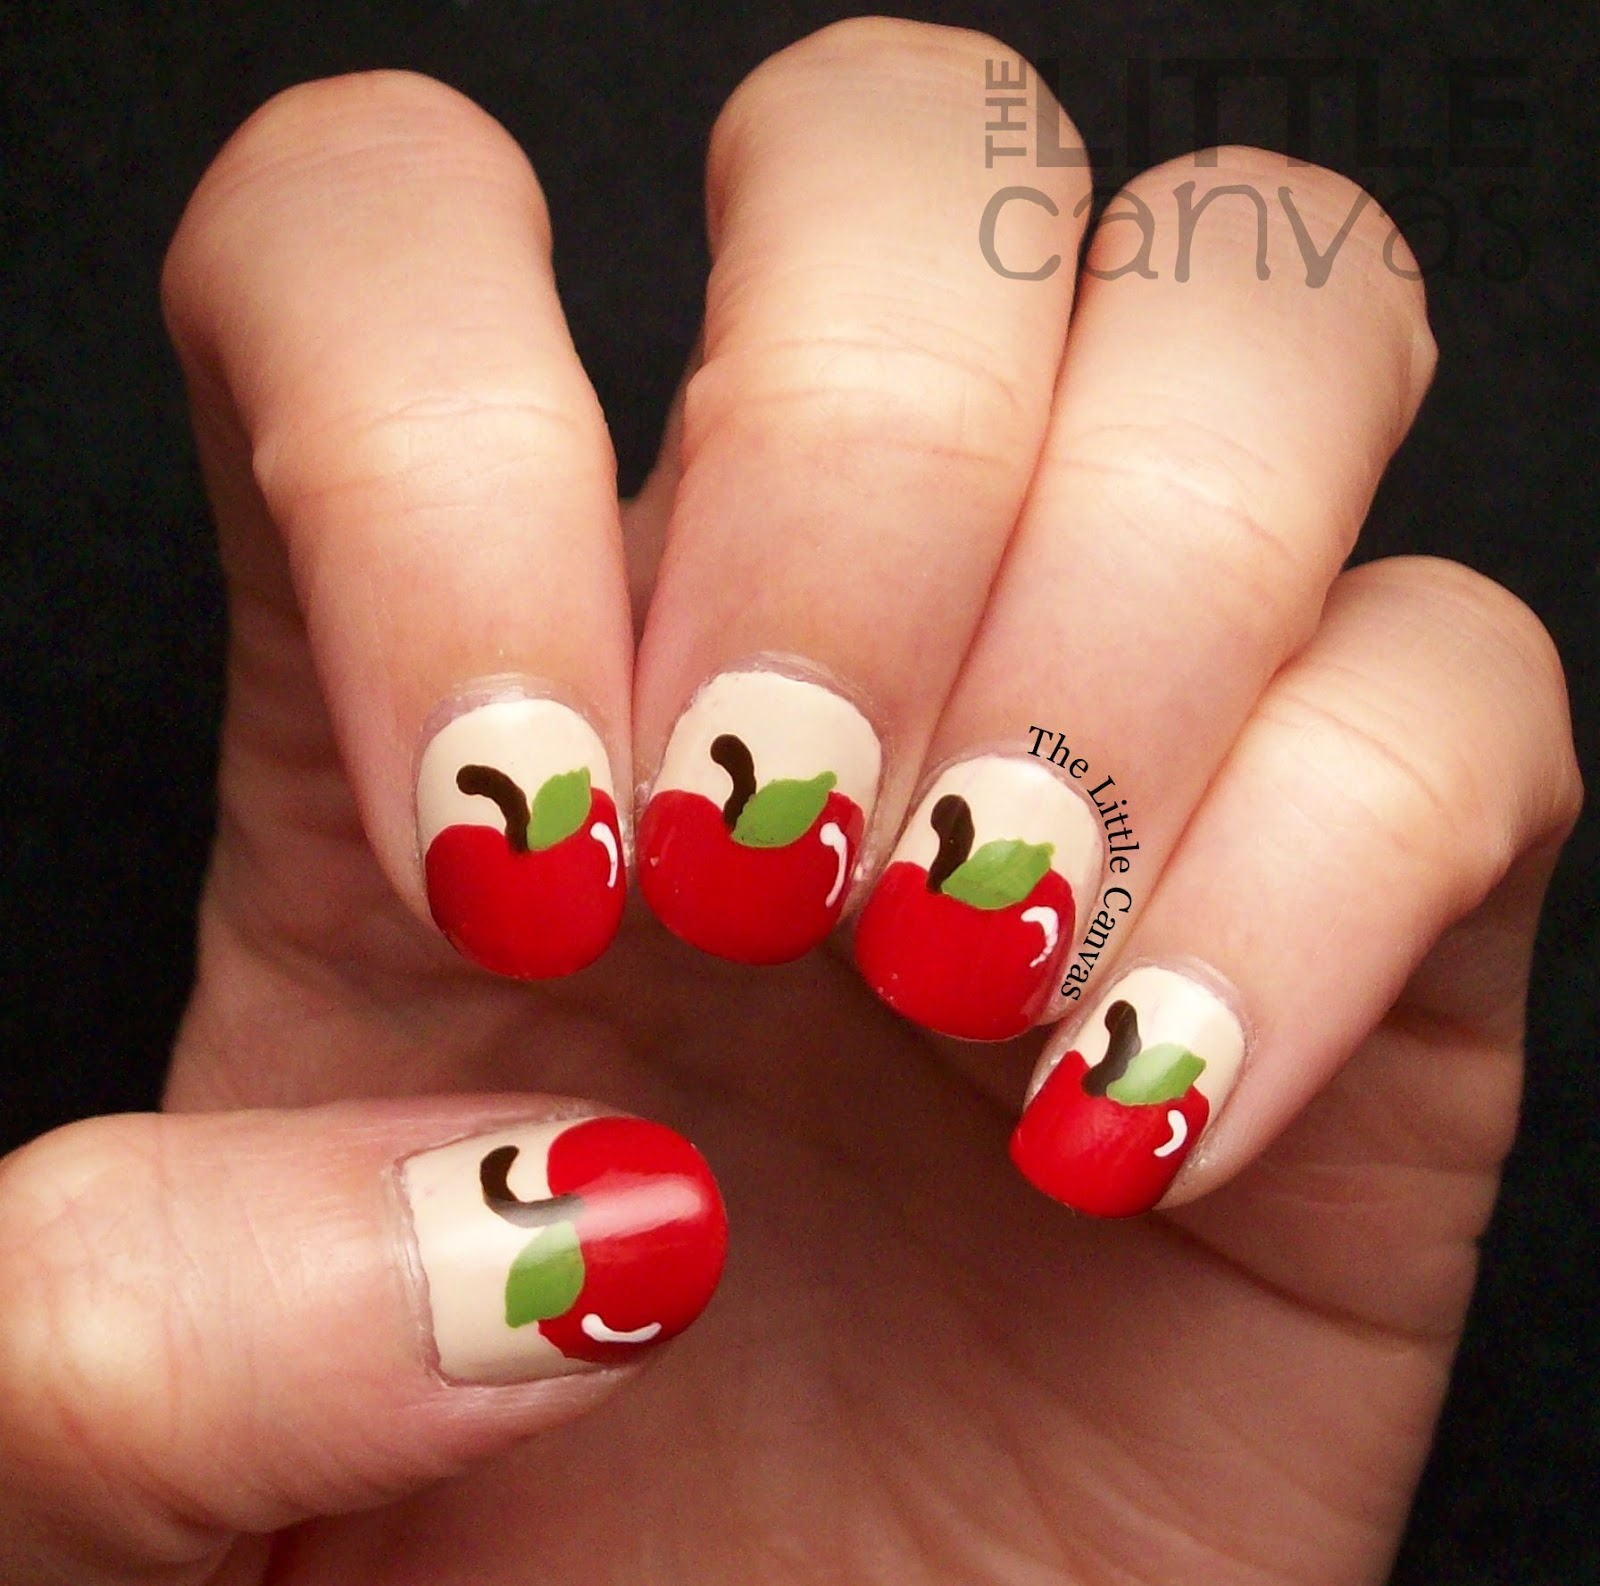 The Beauty Buffs: Fall Theme: Apple Nail Art - The Little Canvas